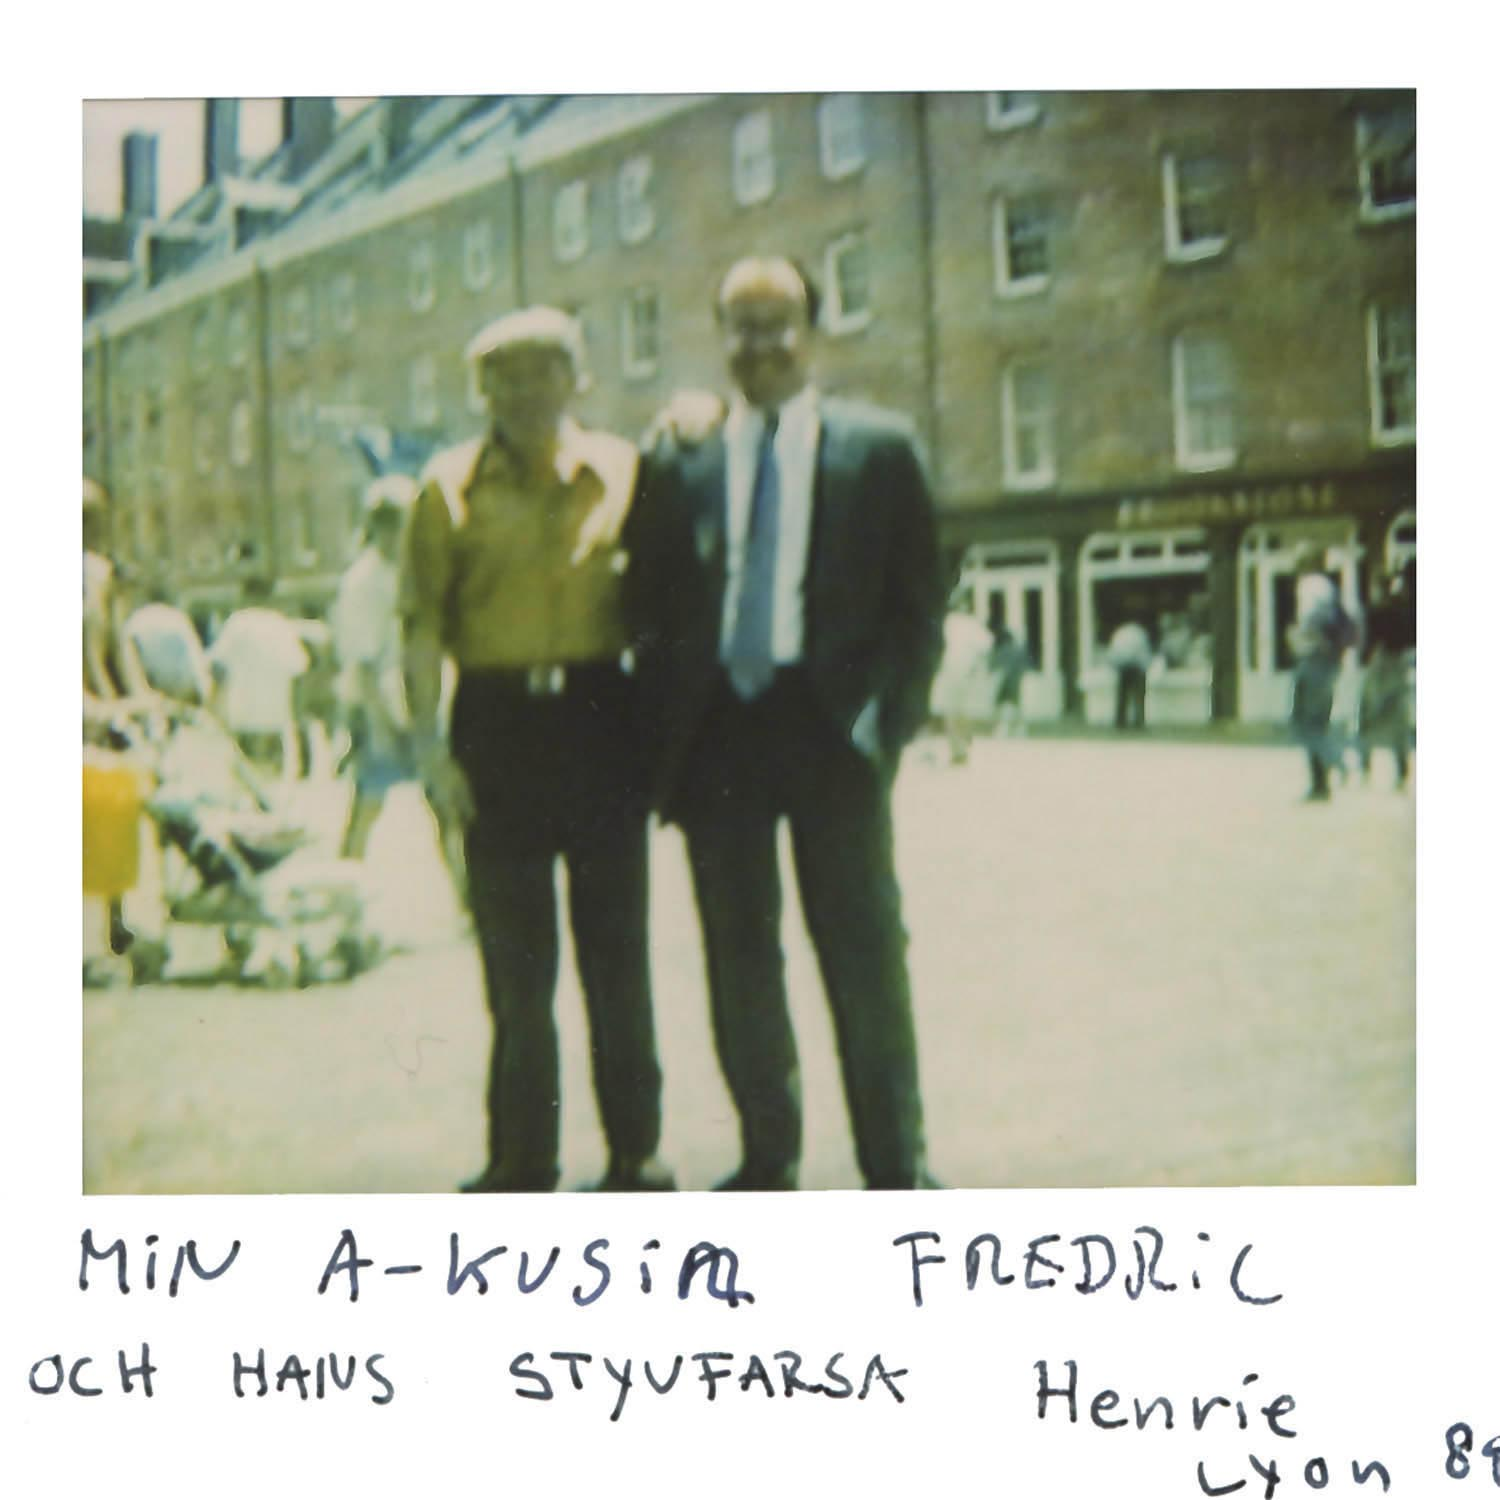 my A cousin Fredrik and his  stepdad Henrie in Lyon 89